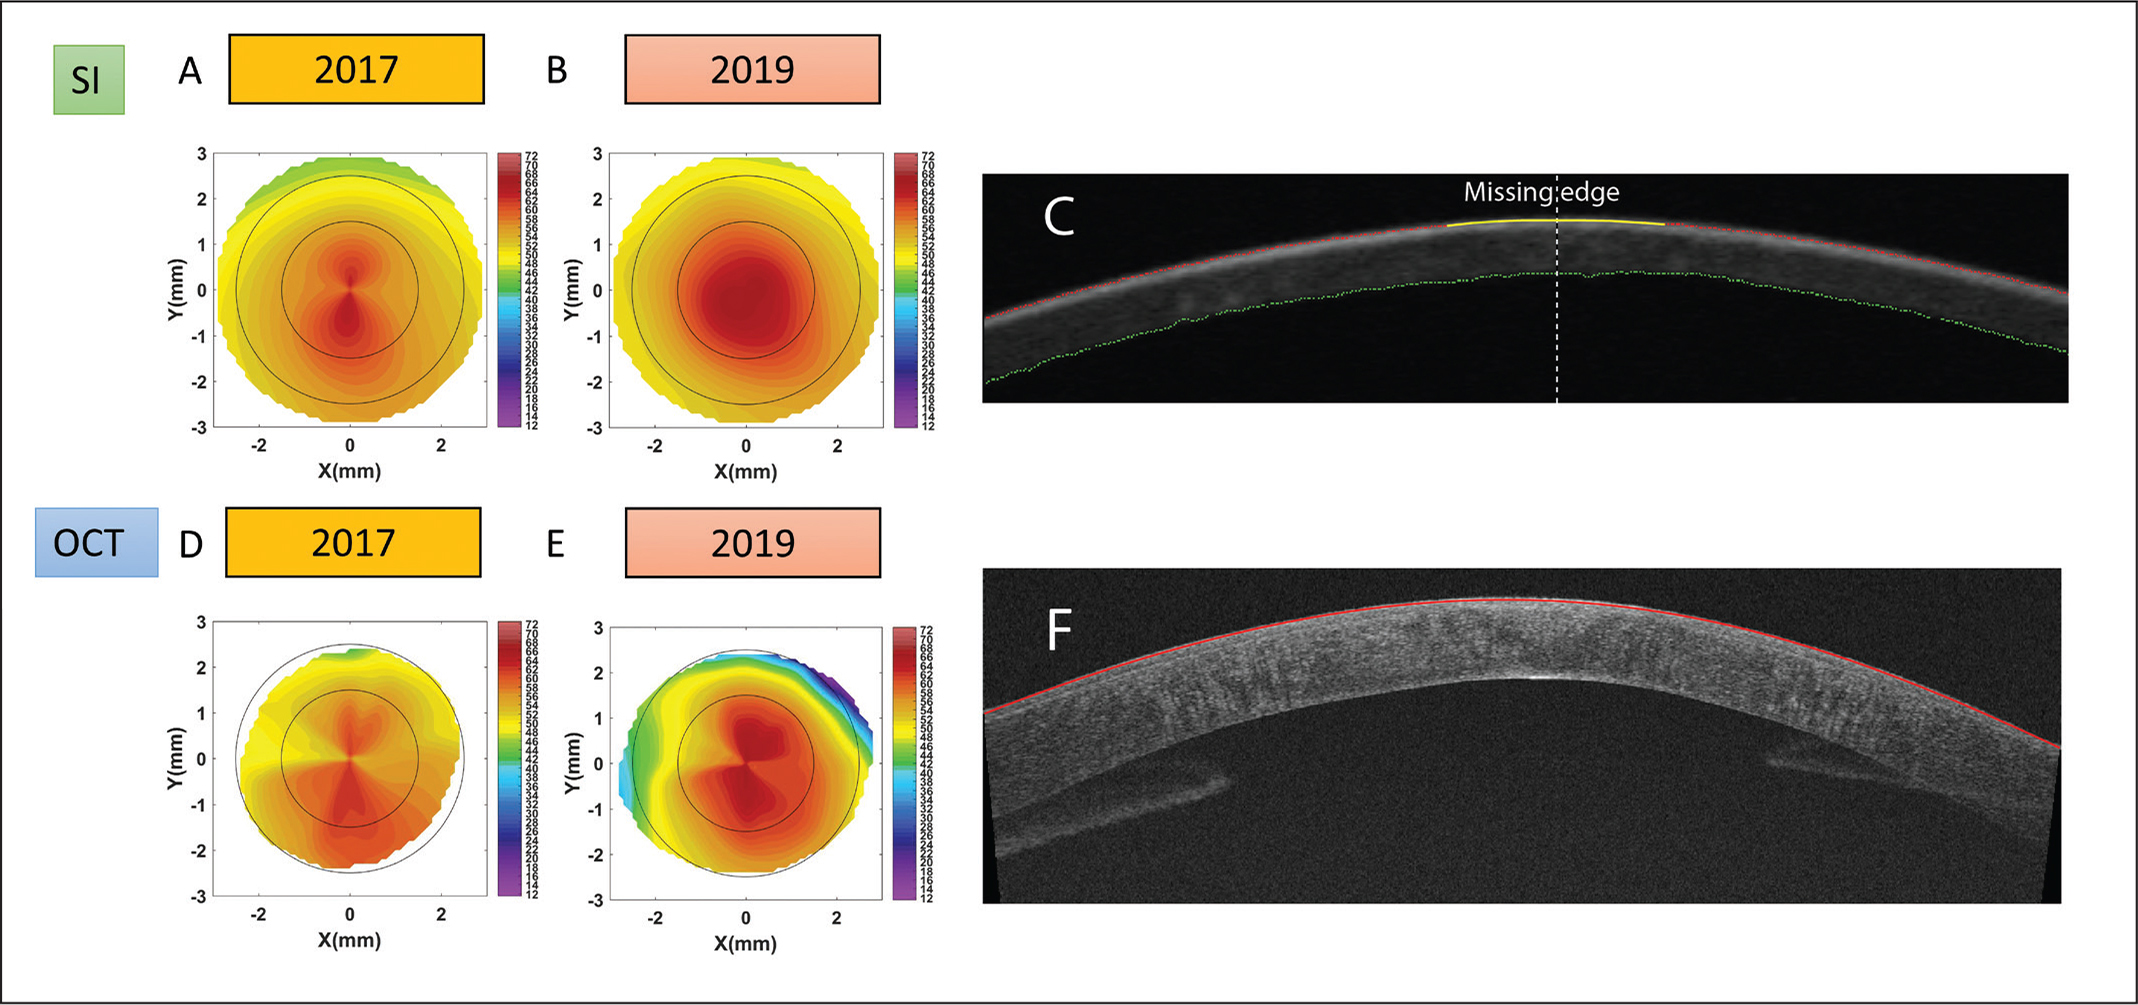 Scheimpflug imaging (SI) axial curvature of anterior surface of the left eye in (A) 2017 and (B) 2019, and optical coherence tomography (OCT) anterior surface curvature in (D) 2017 and (E) 2019. The color bar unit is diopters. The edge detection in a cross-sectional SI and OCT image of the left eye in shown in (C) and (F), respectively. Note the missing edge highlighted with the yellow line in (C).